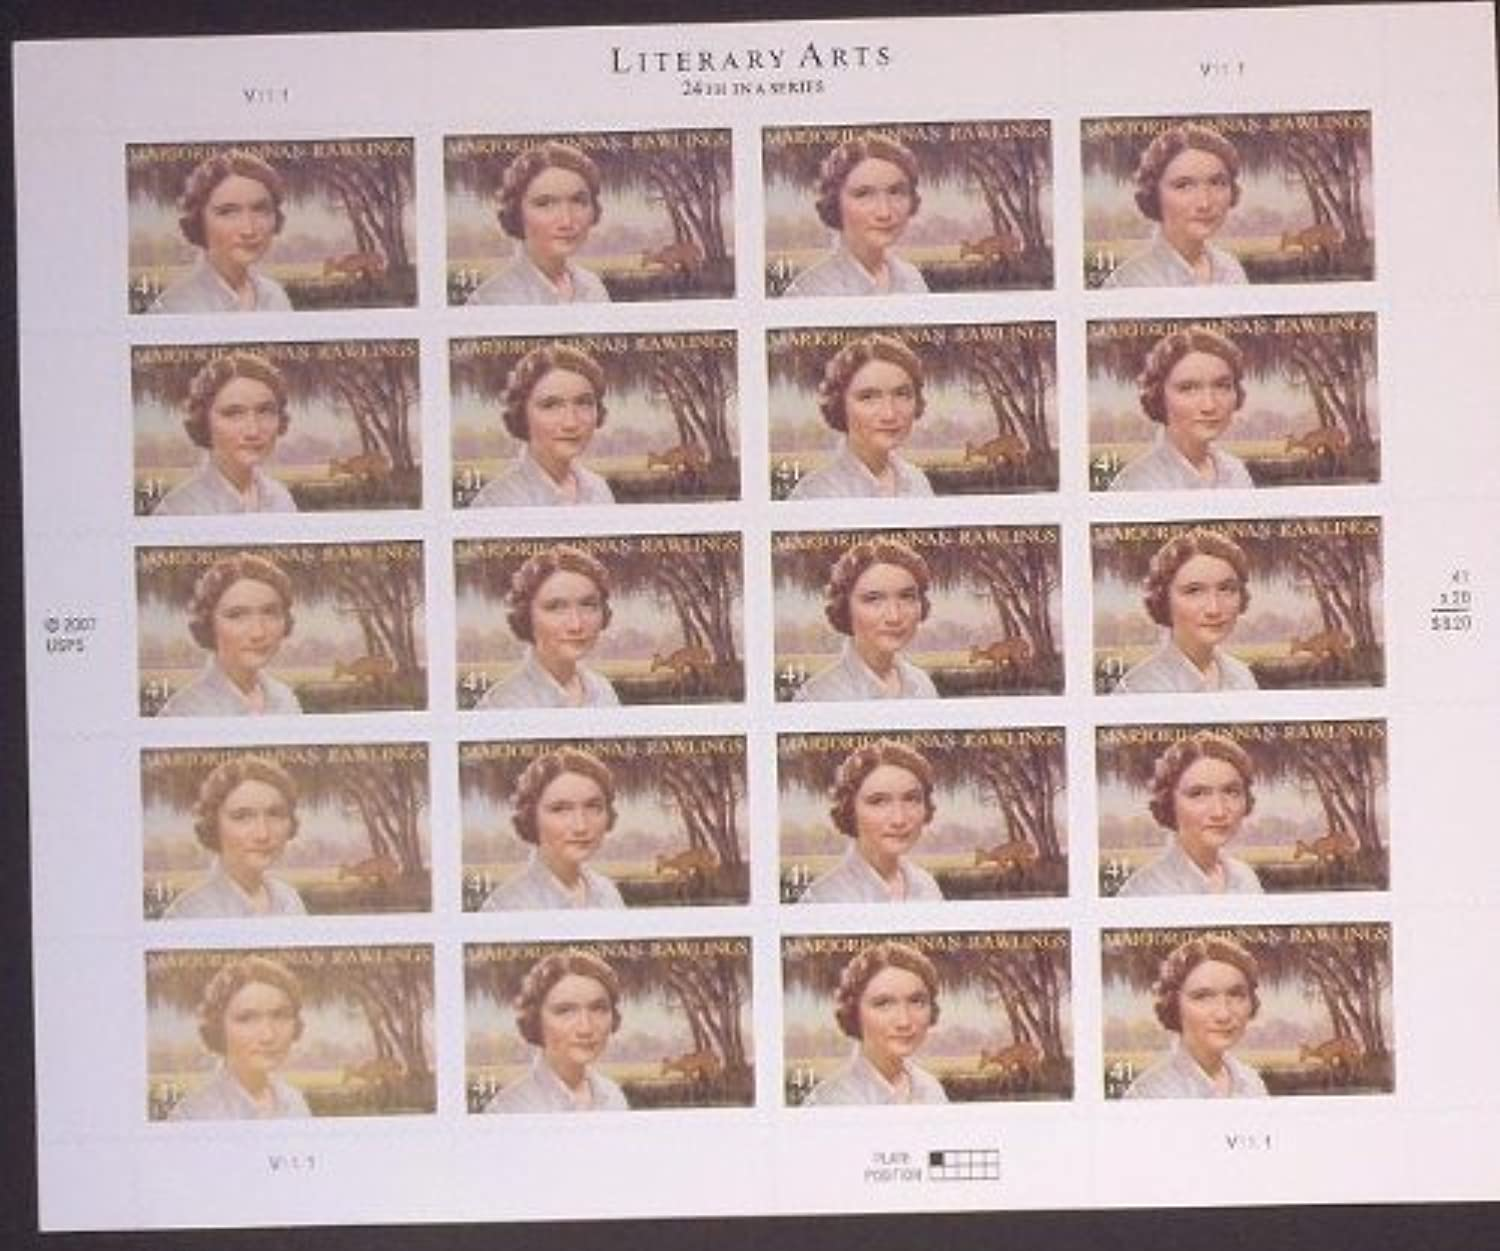 Literary Arts Marjory Rawlings Sheet of Twenty 41 Cent Stamps Scott 4223 by USPS